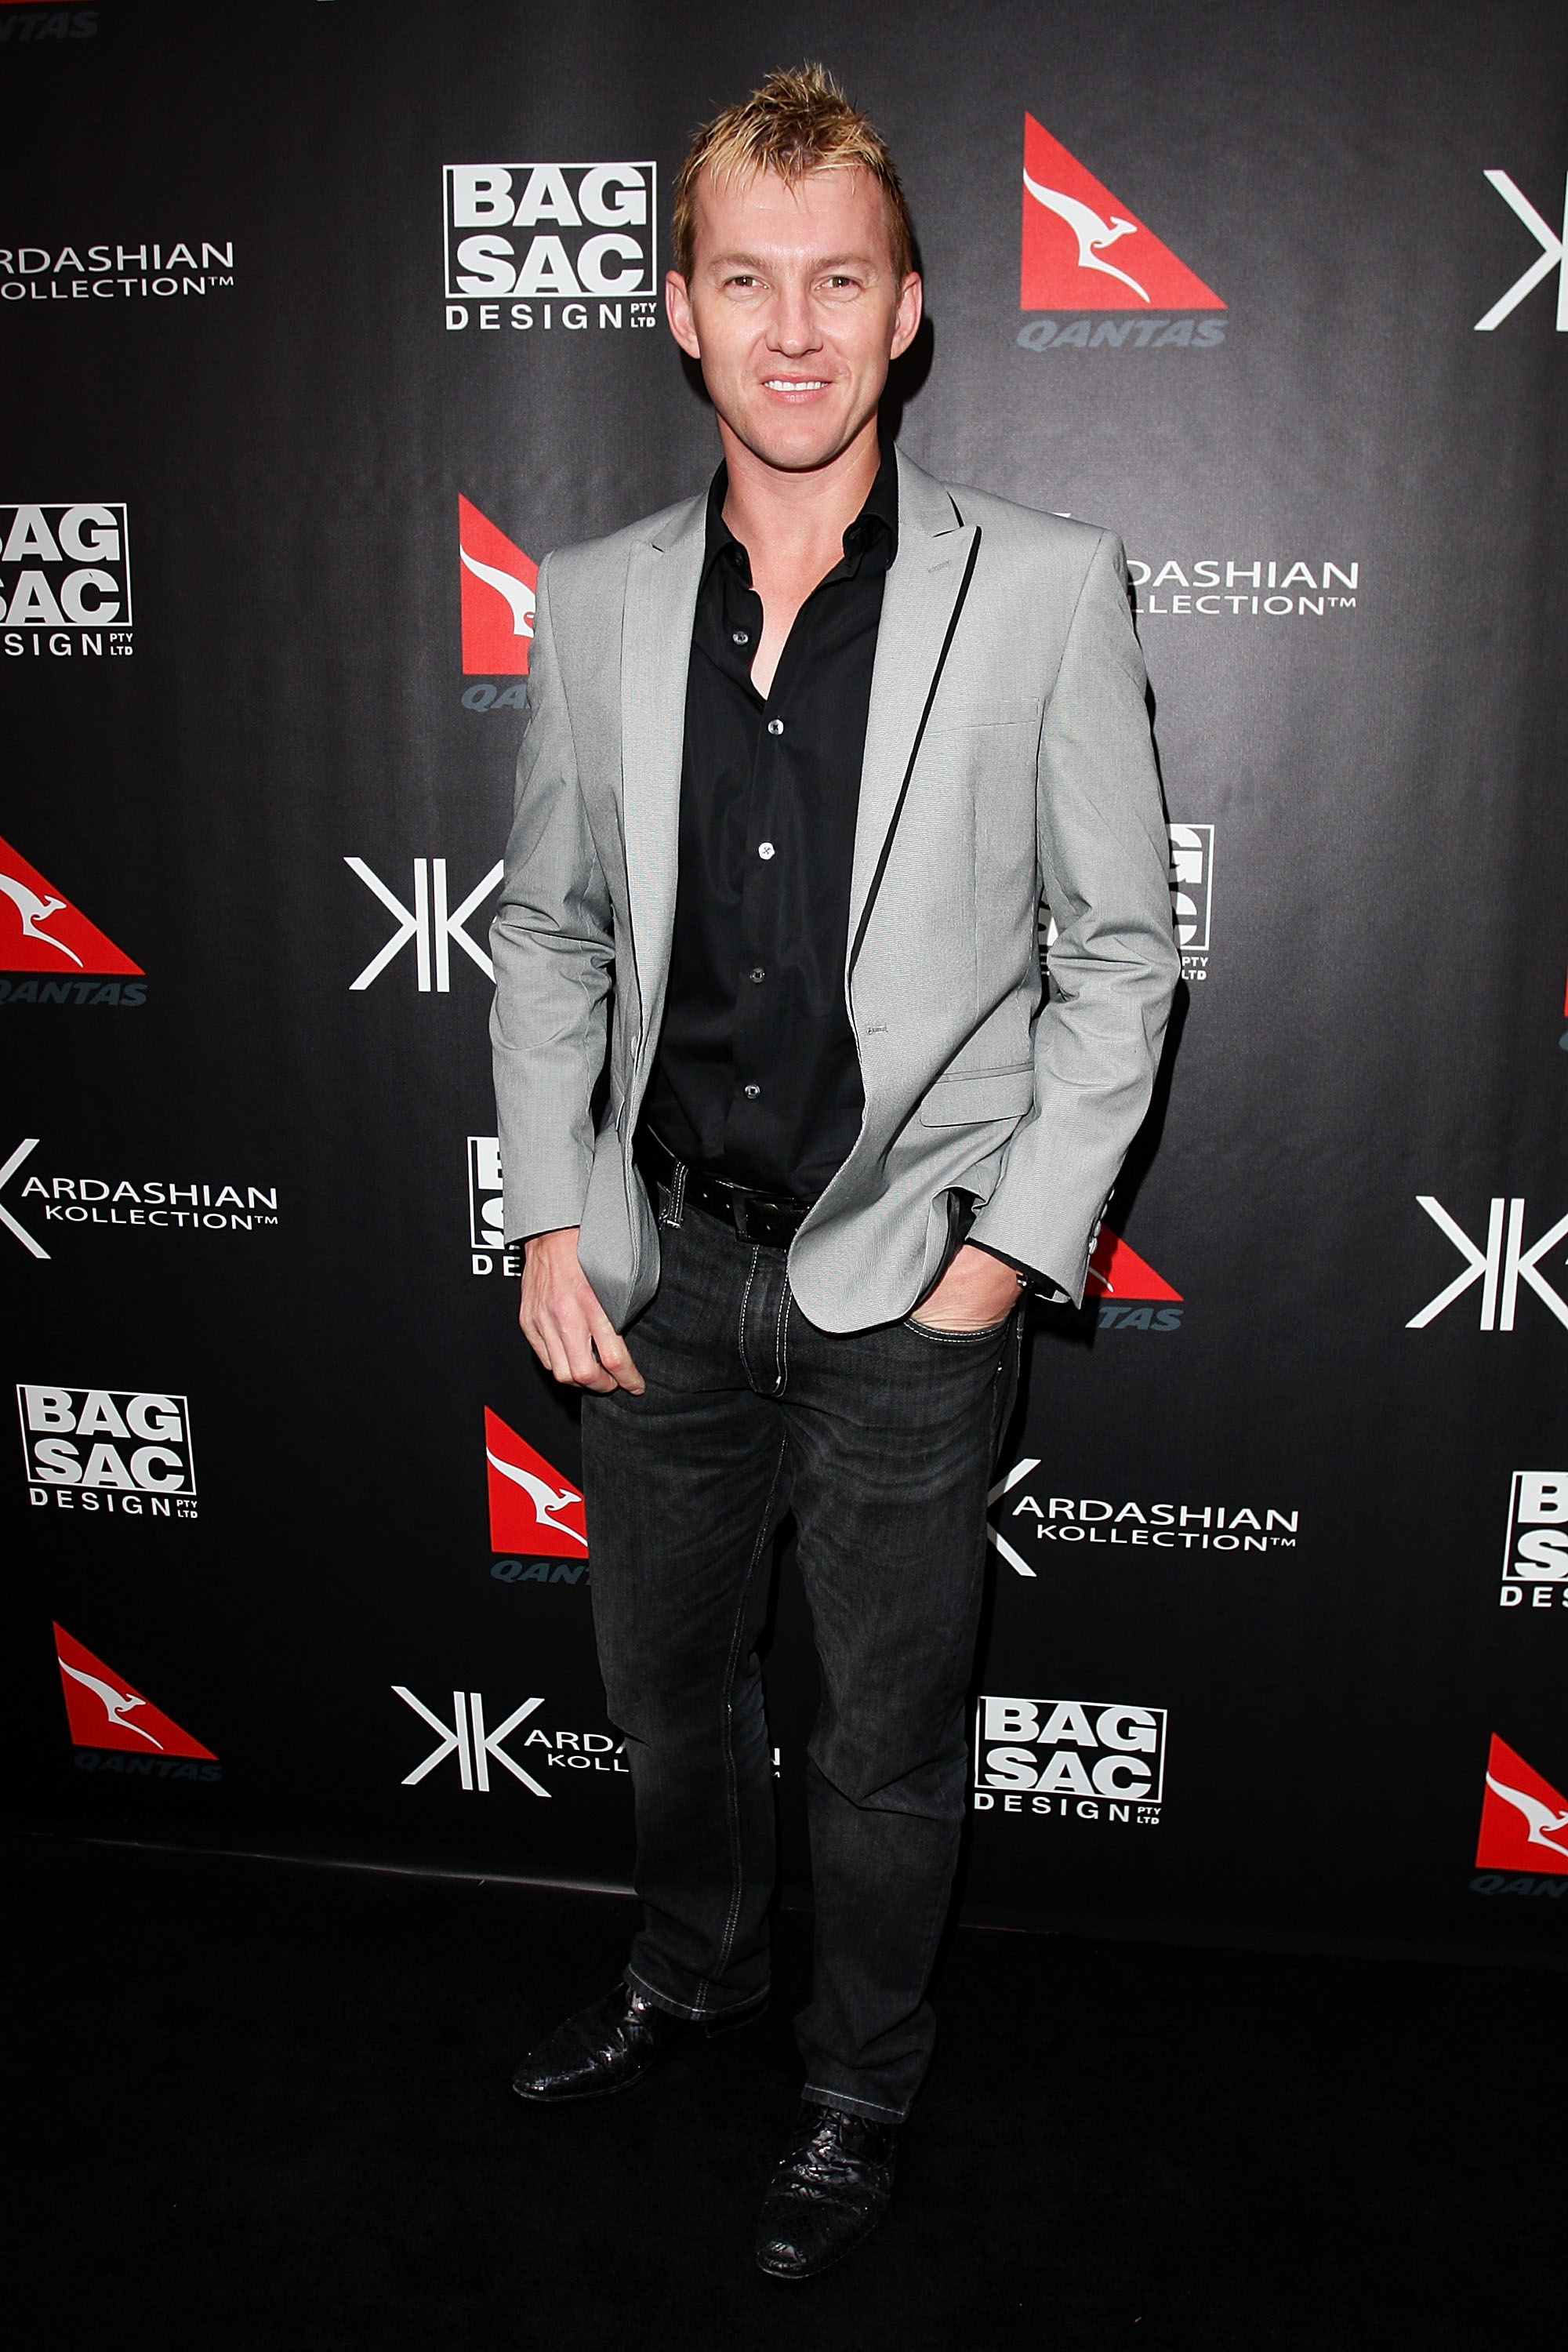 Brett Lee at the Kardashian Kollection launch.